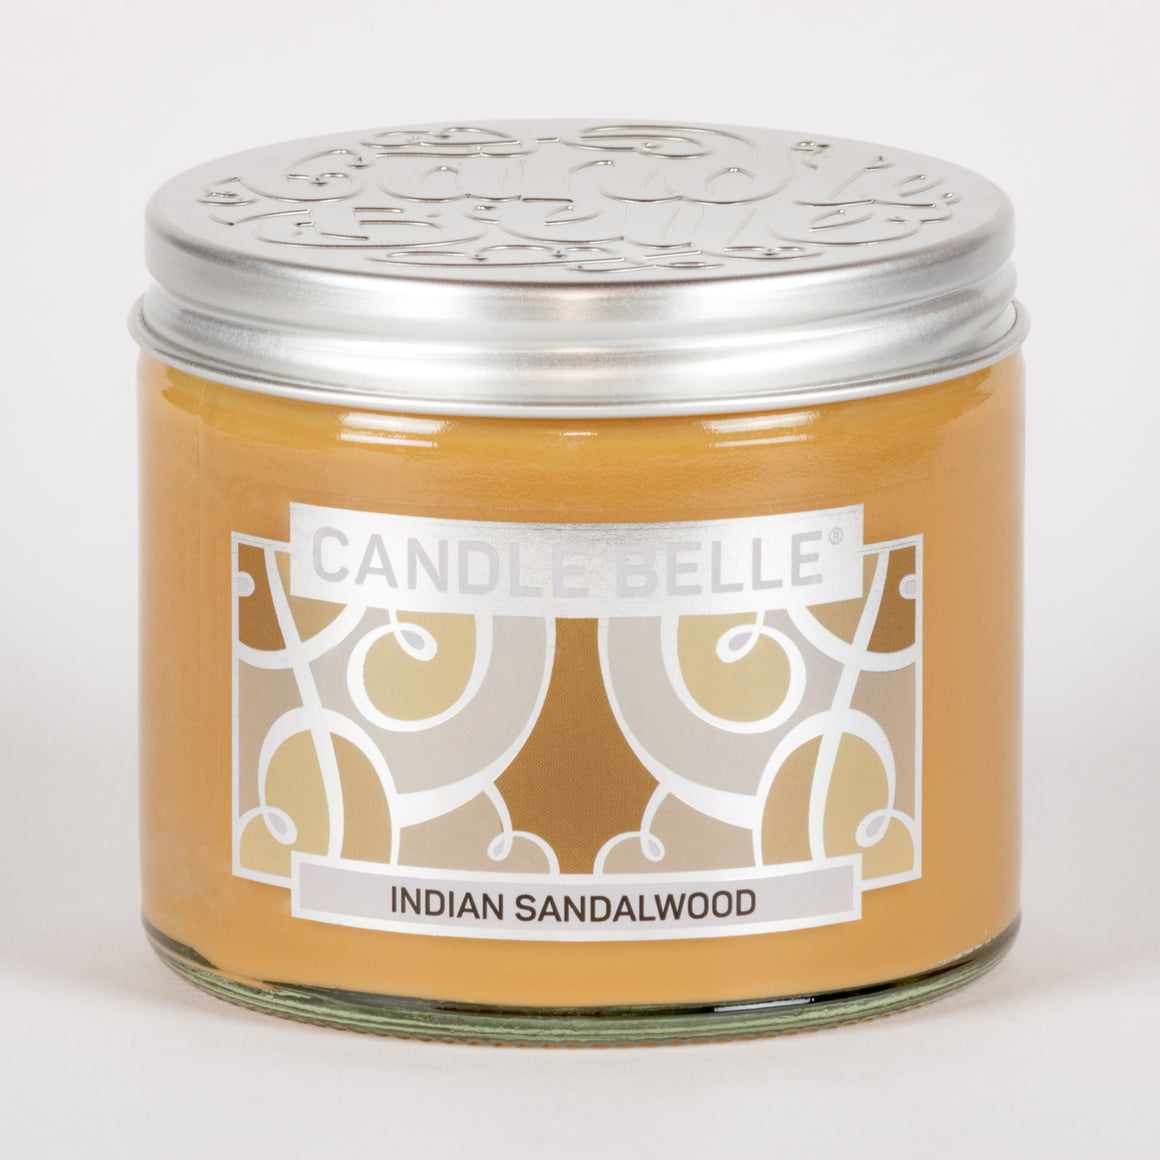 Candle Belle® Indian Sandalwood Fragranced Twin Wick Jar Candle 240g (3 Pack)